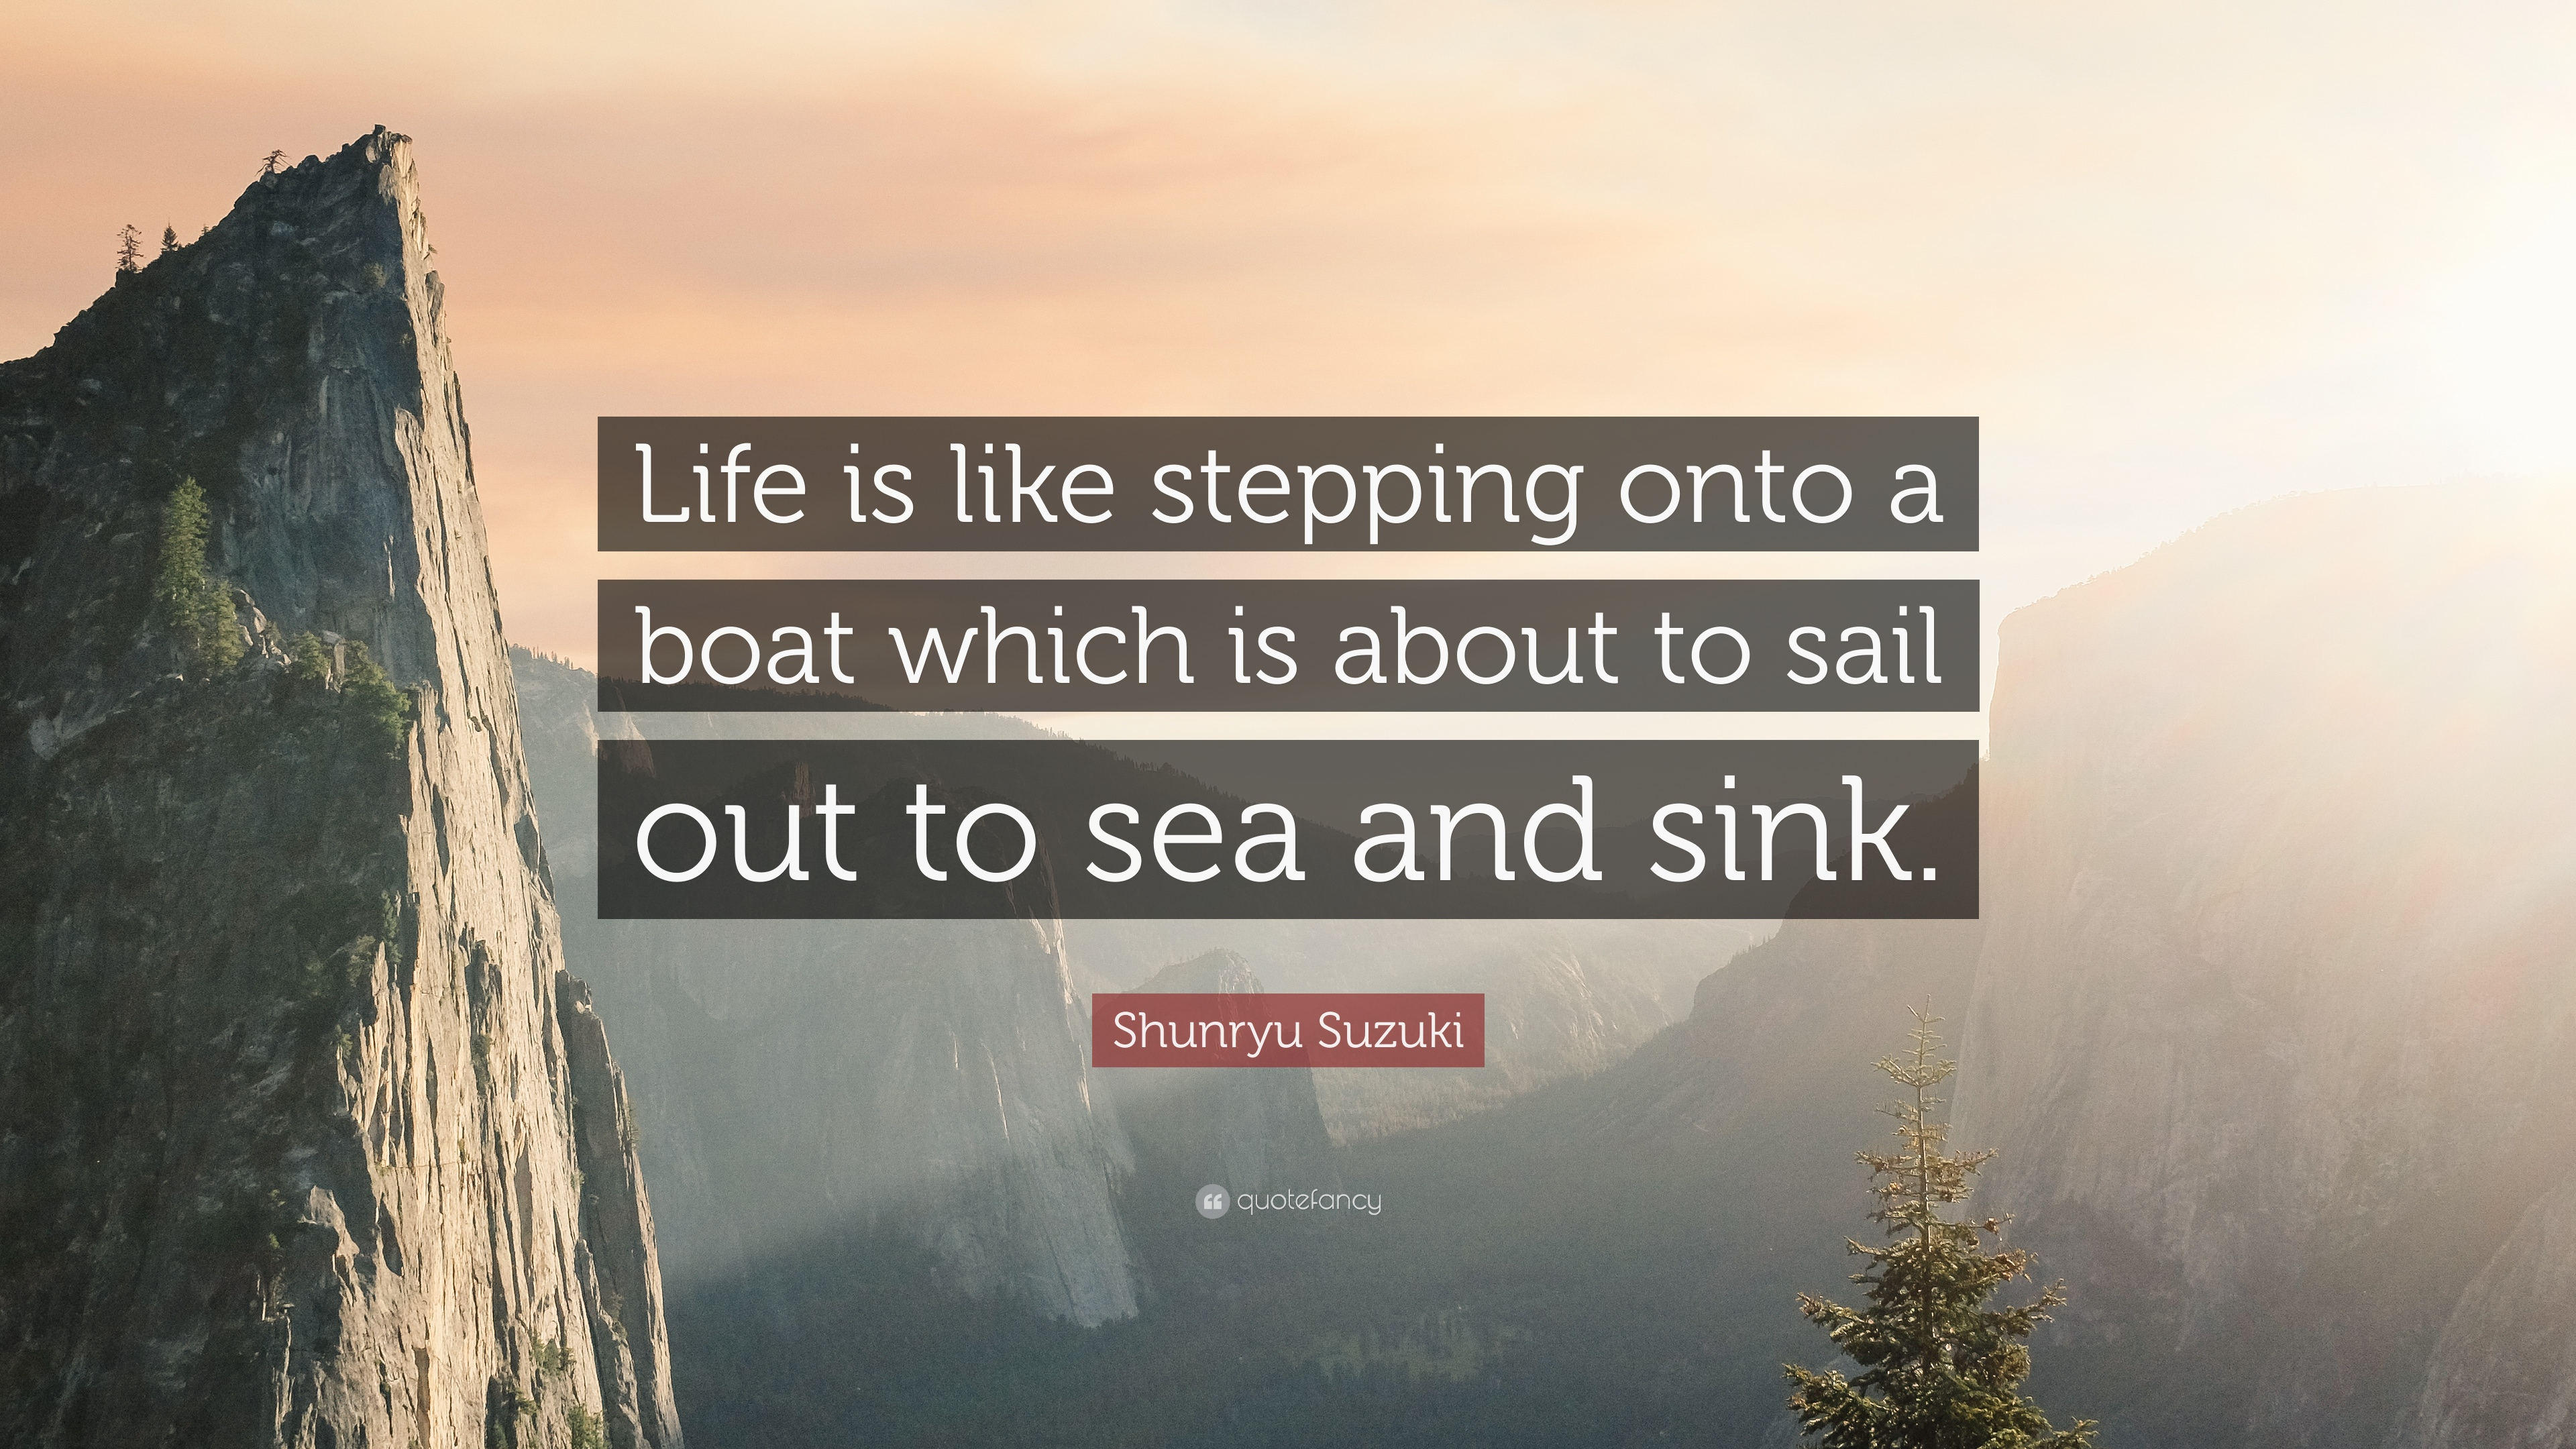 Shunryu Suzuki Quote Life Is Like Stepping Onto A Boat Which Is